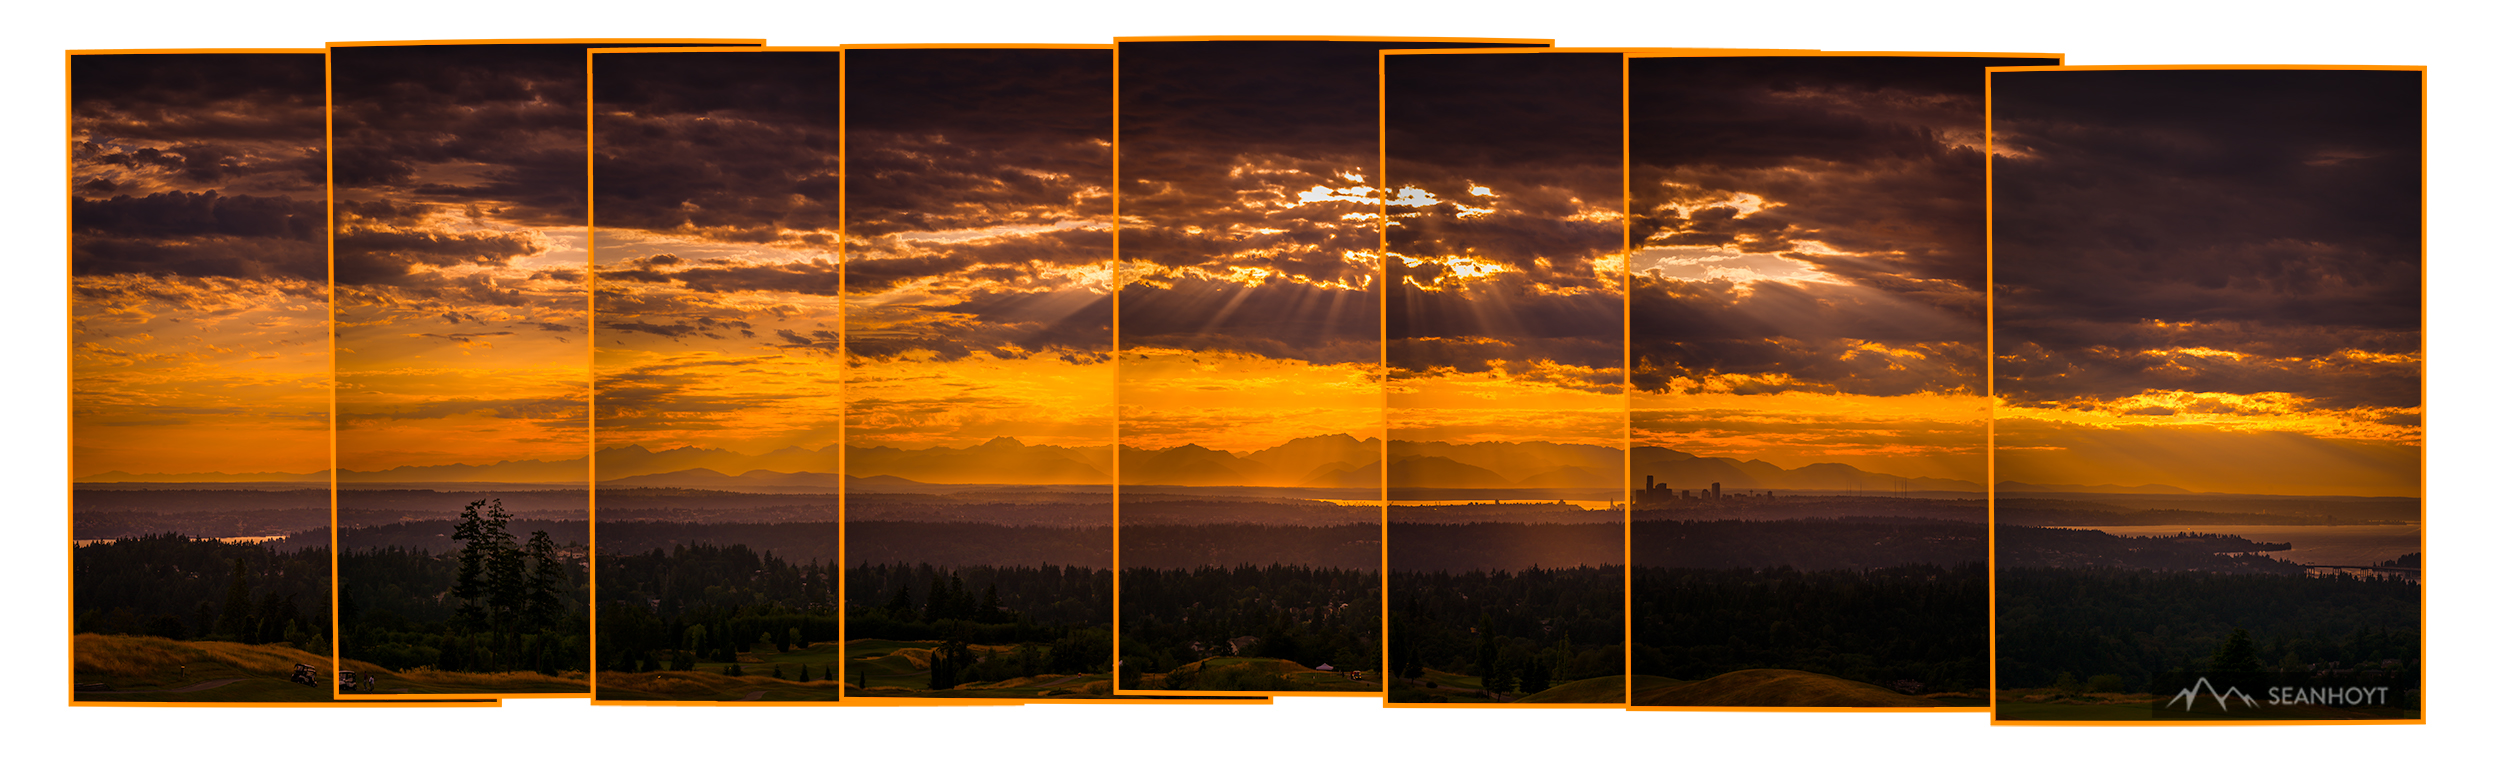 An 8-photo sequence of the Olympic Mountain Range seen past Seattle to the West taken from Newcastle, WA